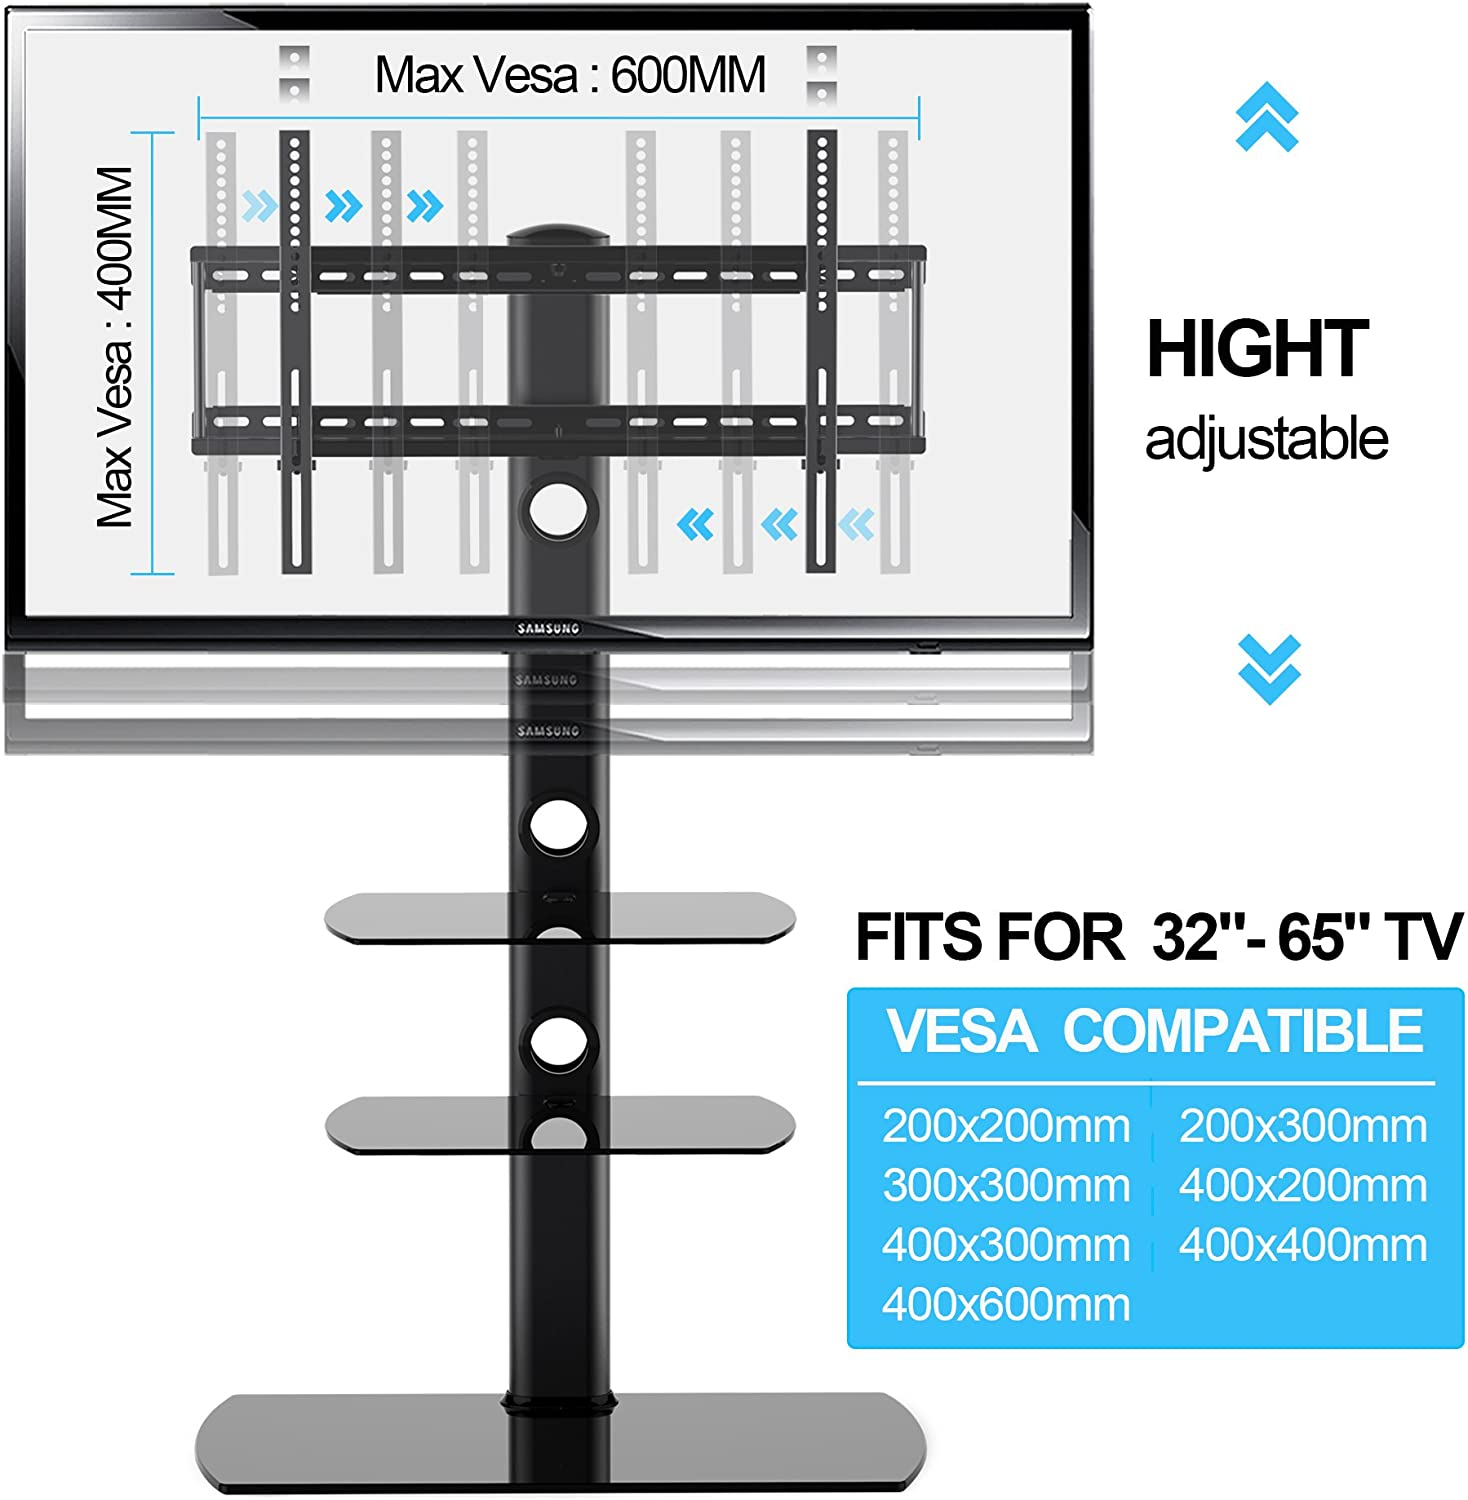 LED OLED TVs FITUEYES Universal TV Stand with Swivel Mount Height Adjustable for 32 to 65 inch LCD